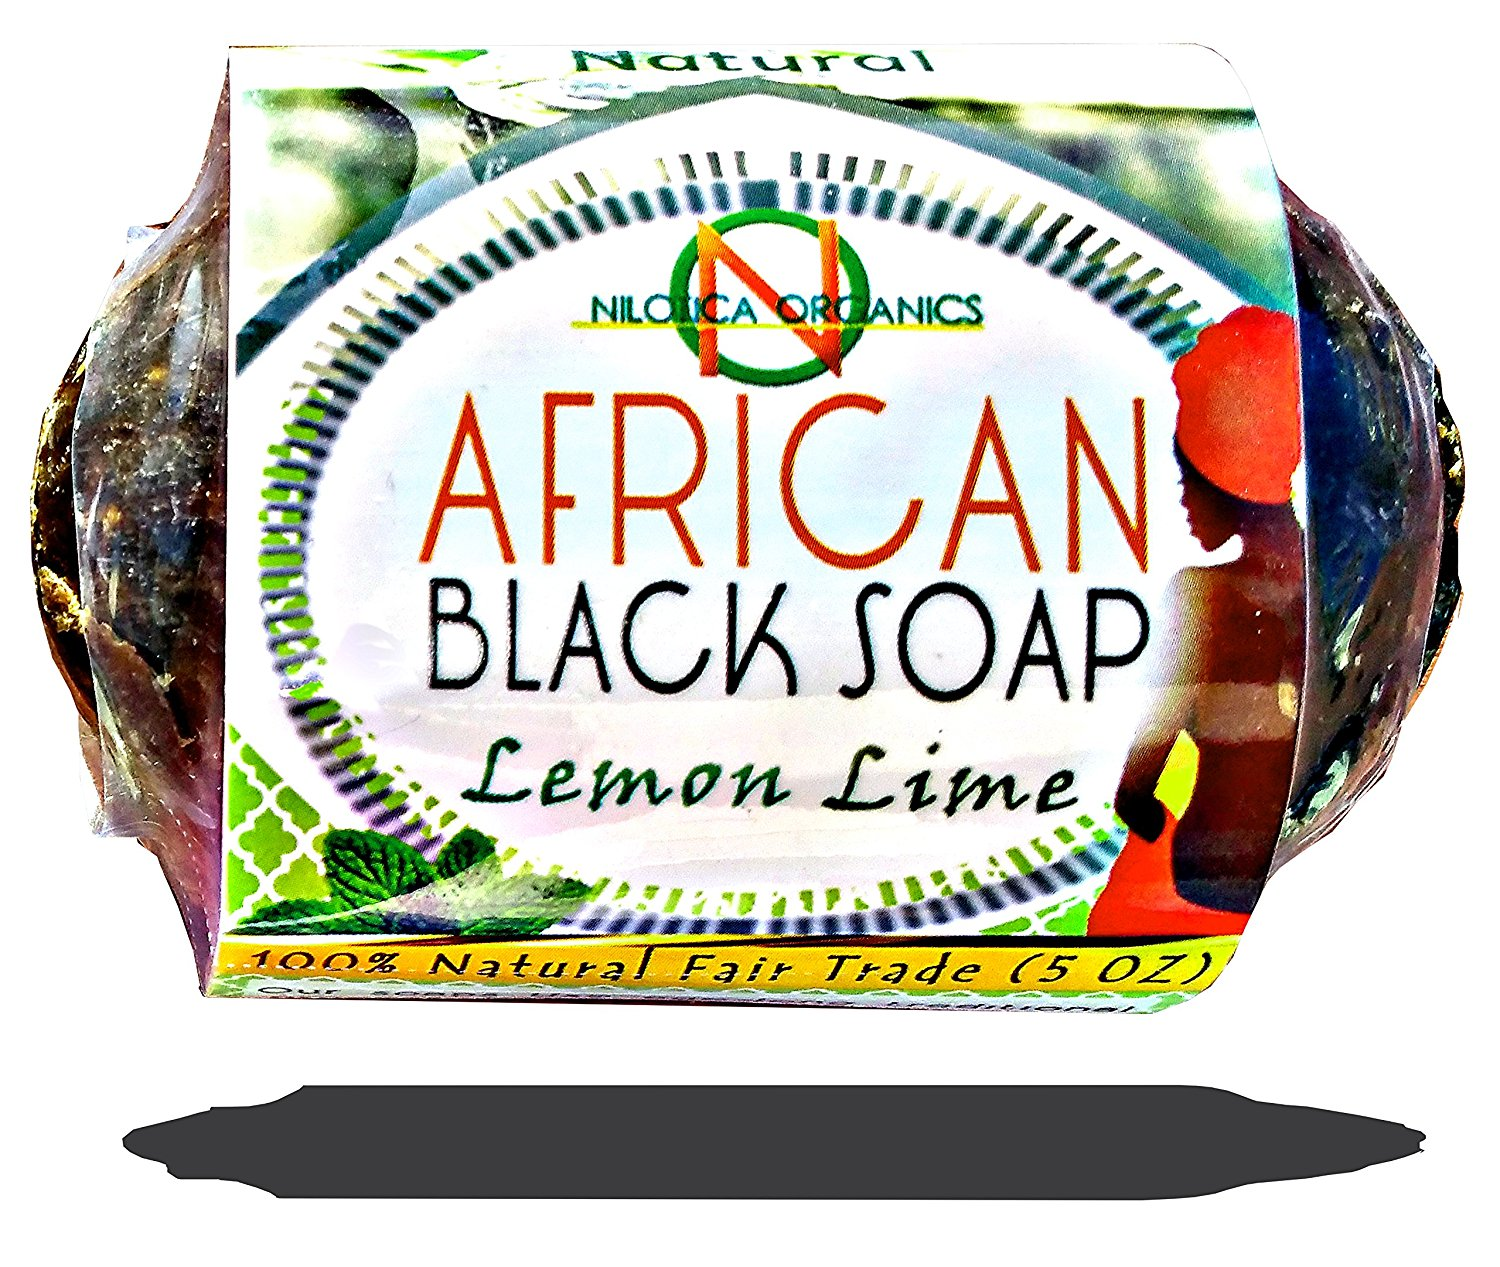 #1 TOP African Black Soap 5 OZ - (100% NATURAL Beauty Bar) Raw Organic Soap Dudu-Osun - for Acne Scars, Dry Skin, Rashes, Scar Removal, Face & Body Wash (Single)